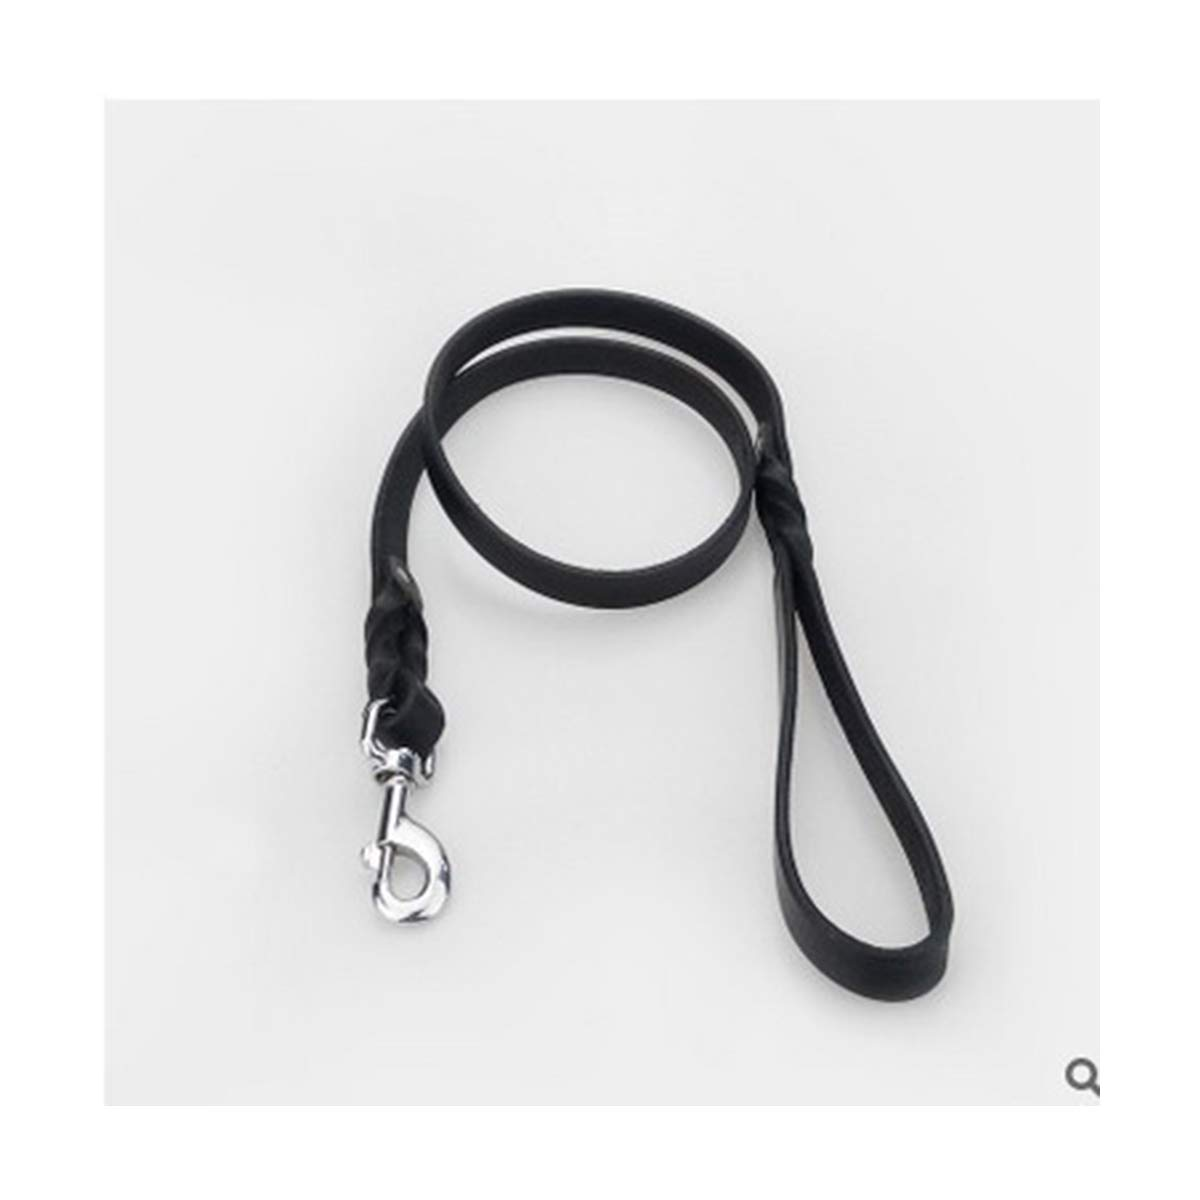 Large Dog Training Leash Rope Leather Material 120 cm Dog Chain Durable Safe, Suitable for Medium and Large Dogs